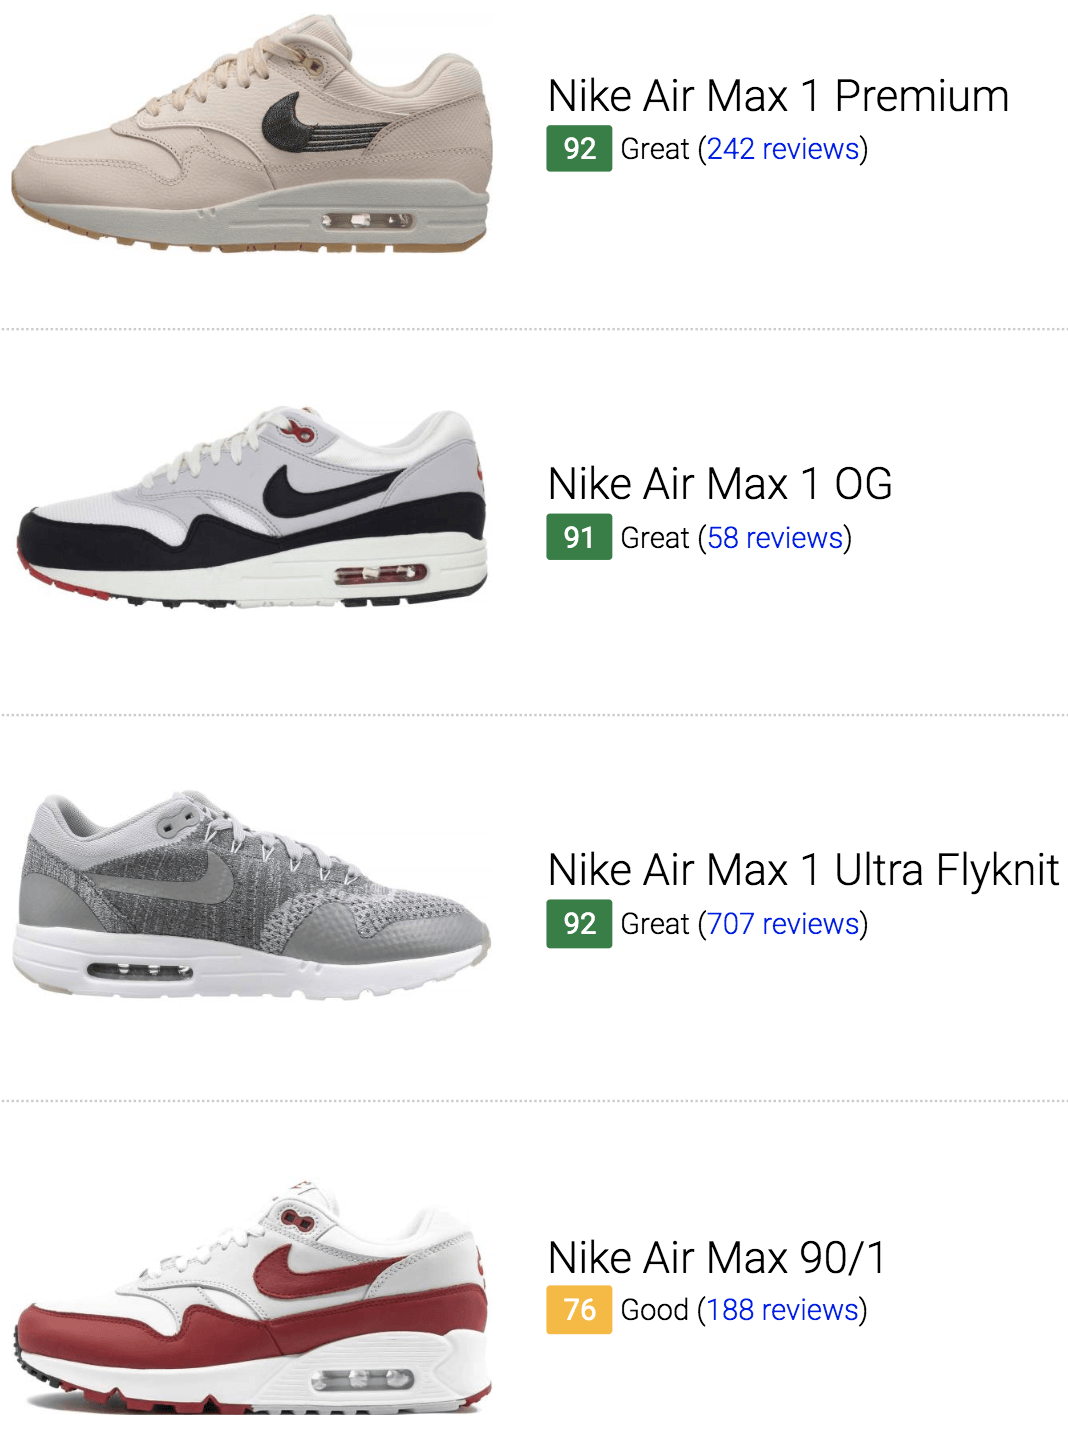 16 Best Nike Air Max 1 Sneakers (September 2019) | RunRepeat